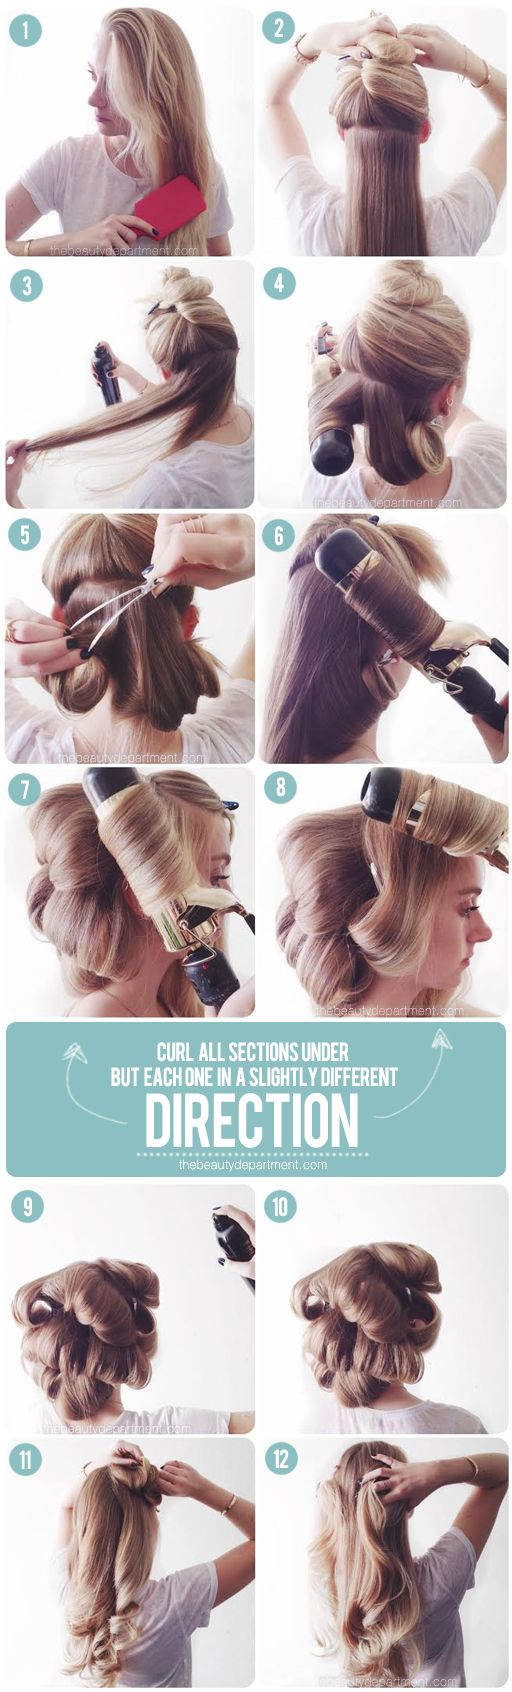 Fake A Pro Blowout With A Curling Iron Hair Styles Long Hair Styles Hair Hacks